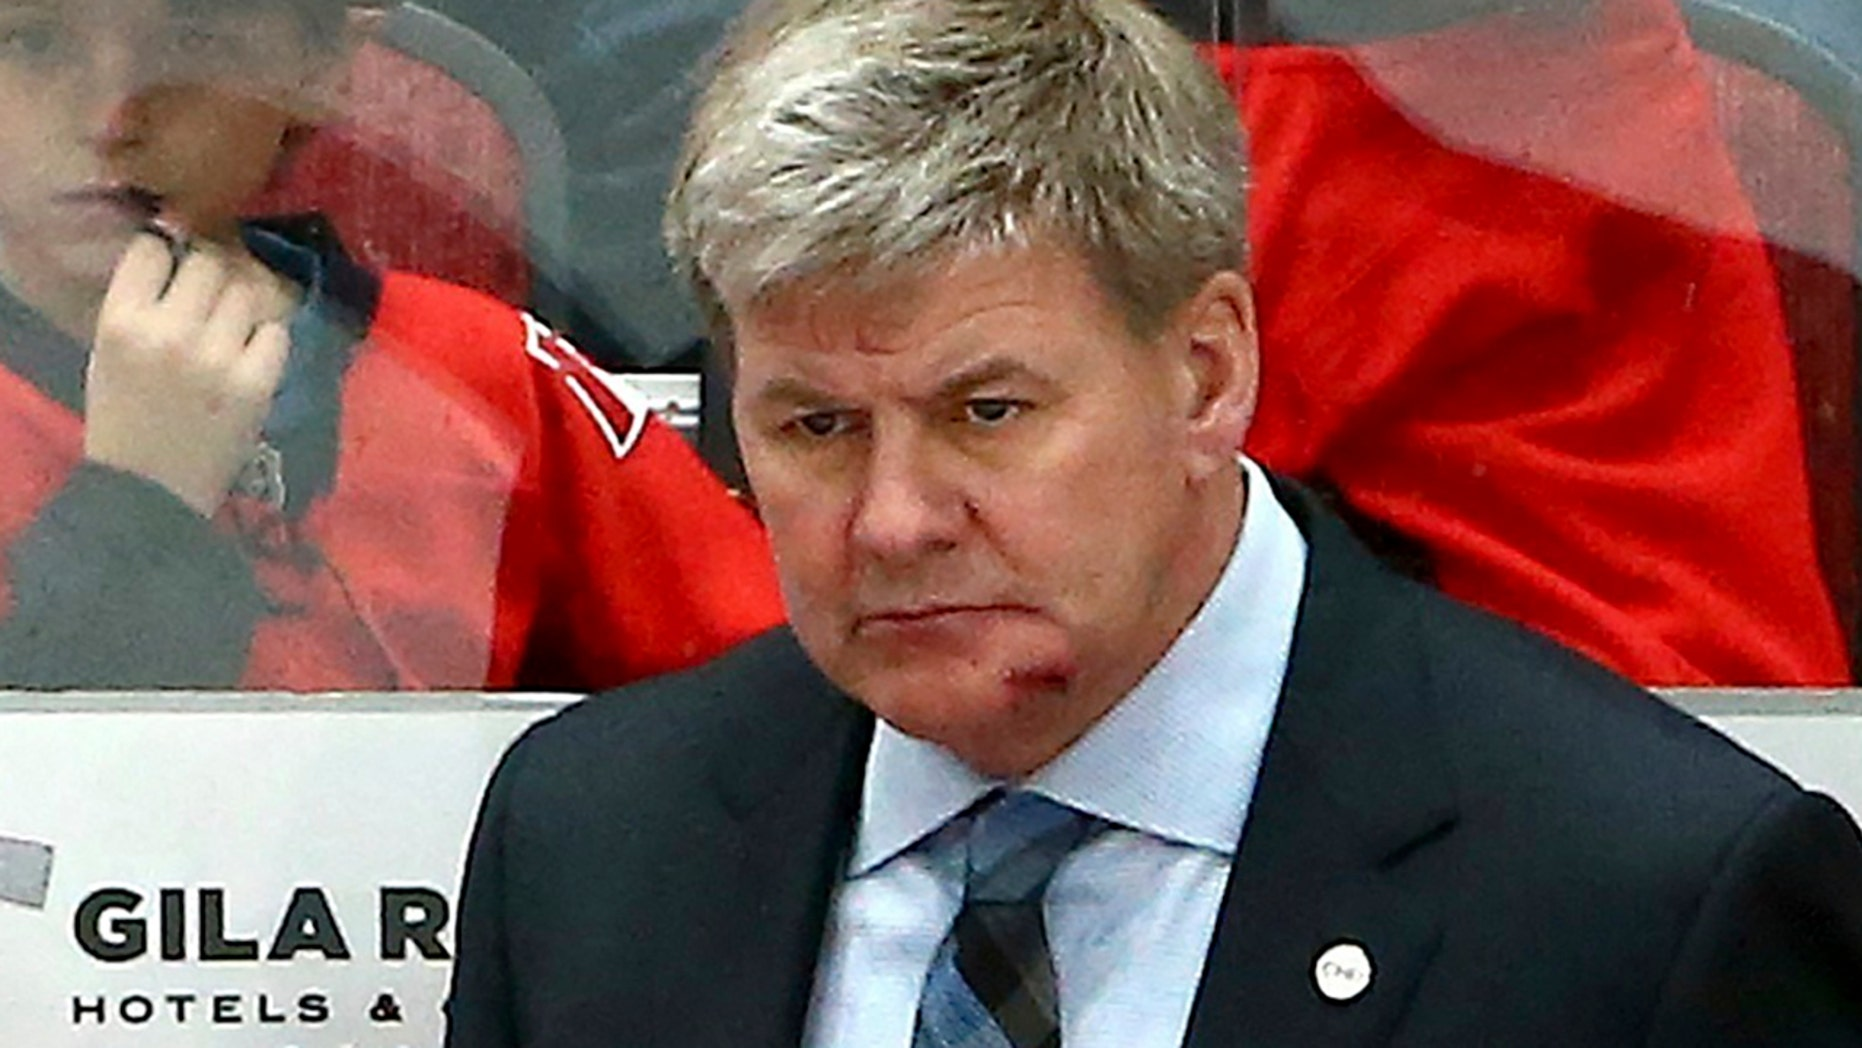 Calgary Flames head coach Bill Peters, top, returns to the bench with a gash on his chin after being hit with the puck earlier in the hockey game.